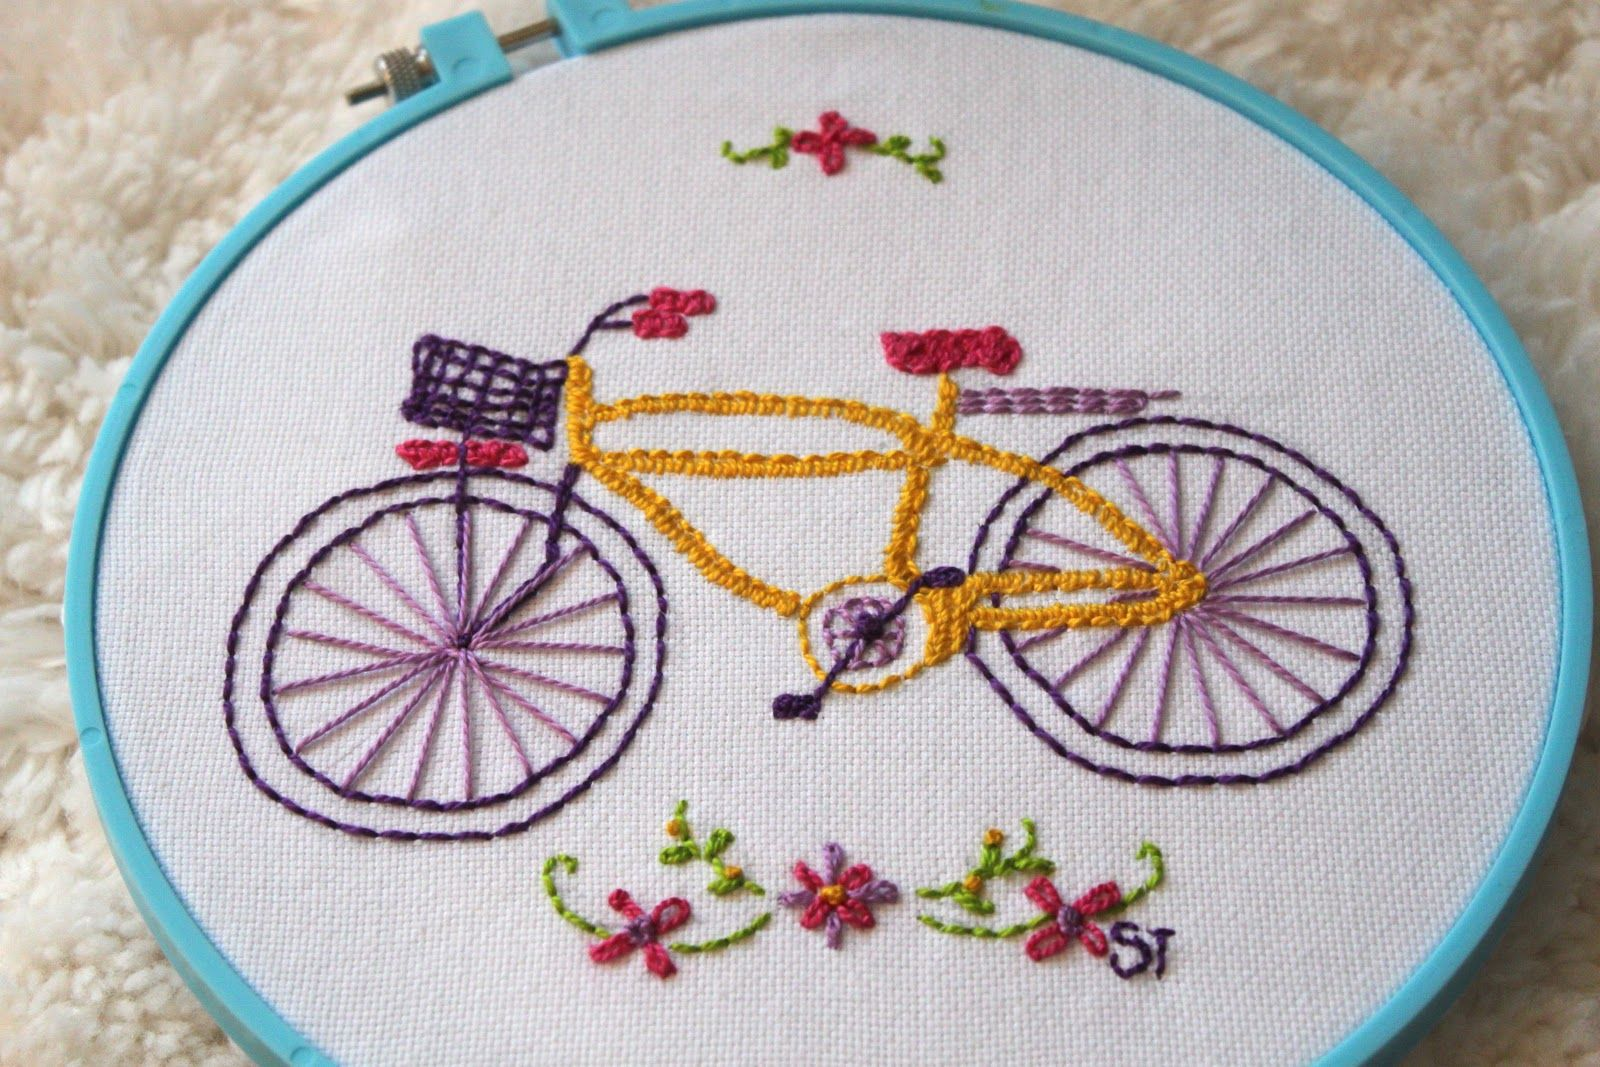 Easy embroidery embroidery projects are so easy and rewarding a easy embroidery embroidery projects are so easy and rewarding a great couch project dt1010fo